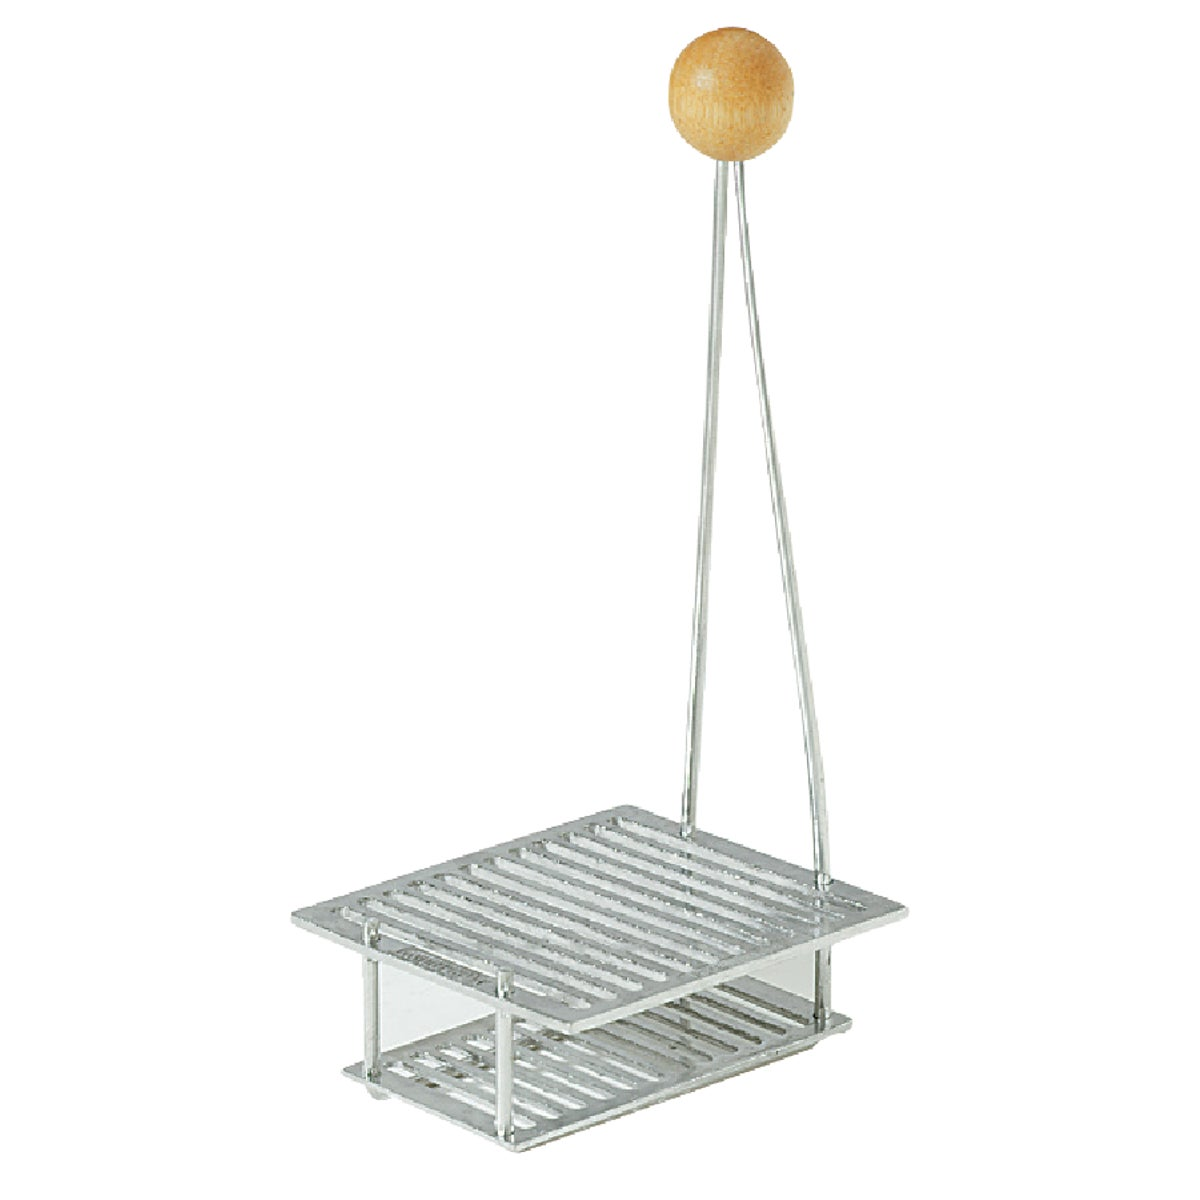 STERILIZING LID RACK